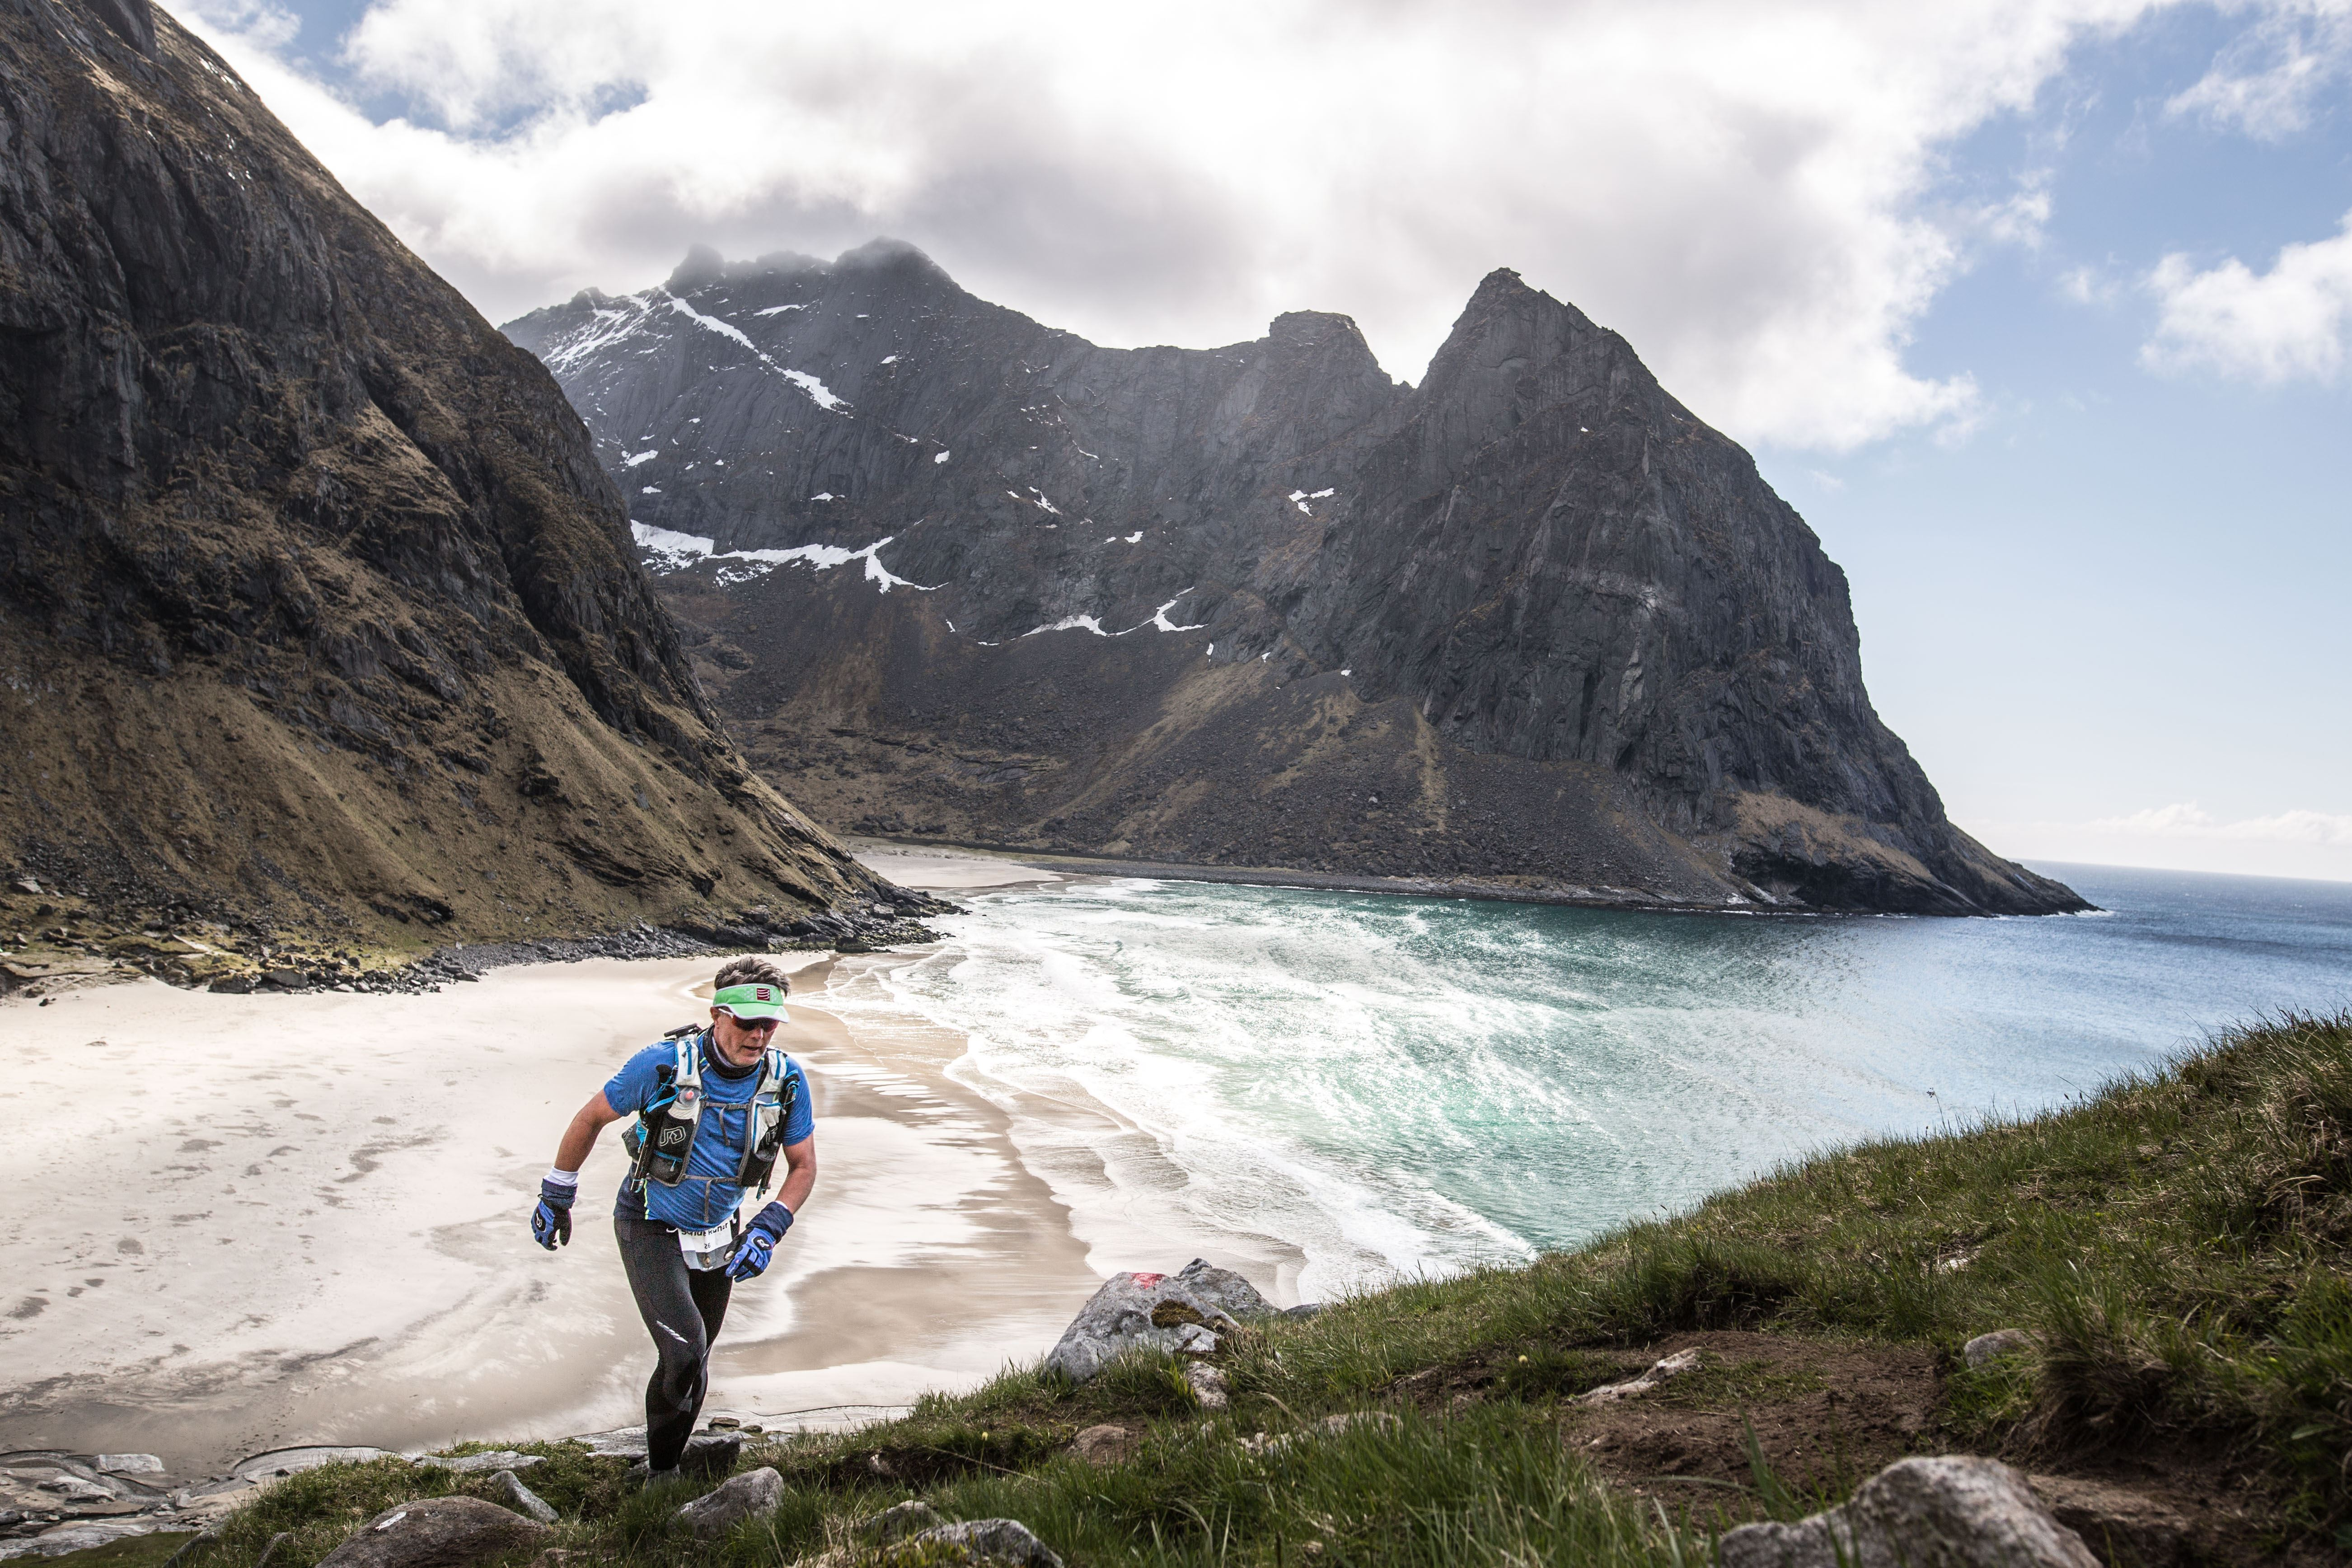 © Alexis Berg // www.thearctictriple.com, Lofoten Ultra-Trail 100 Miles RELAY // The Arctic Triple